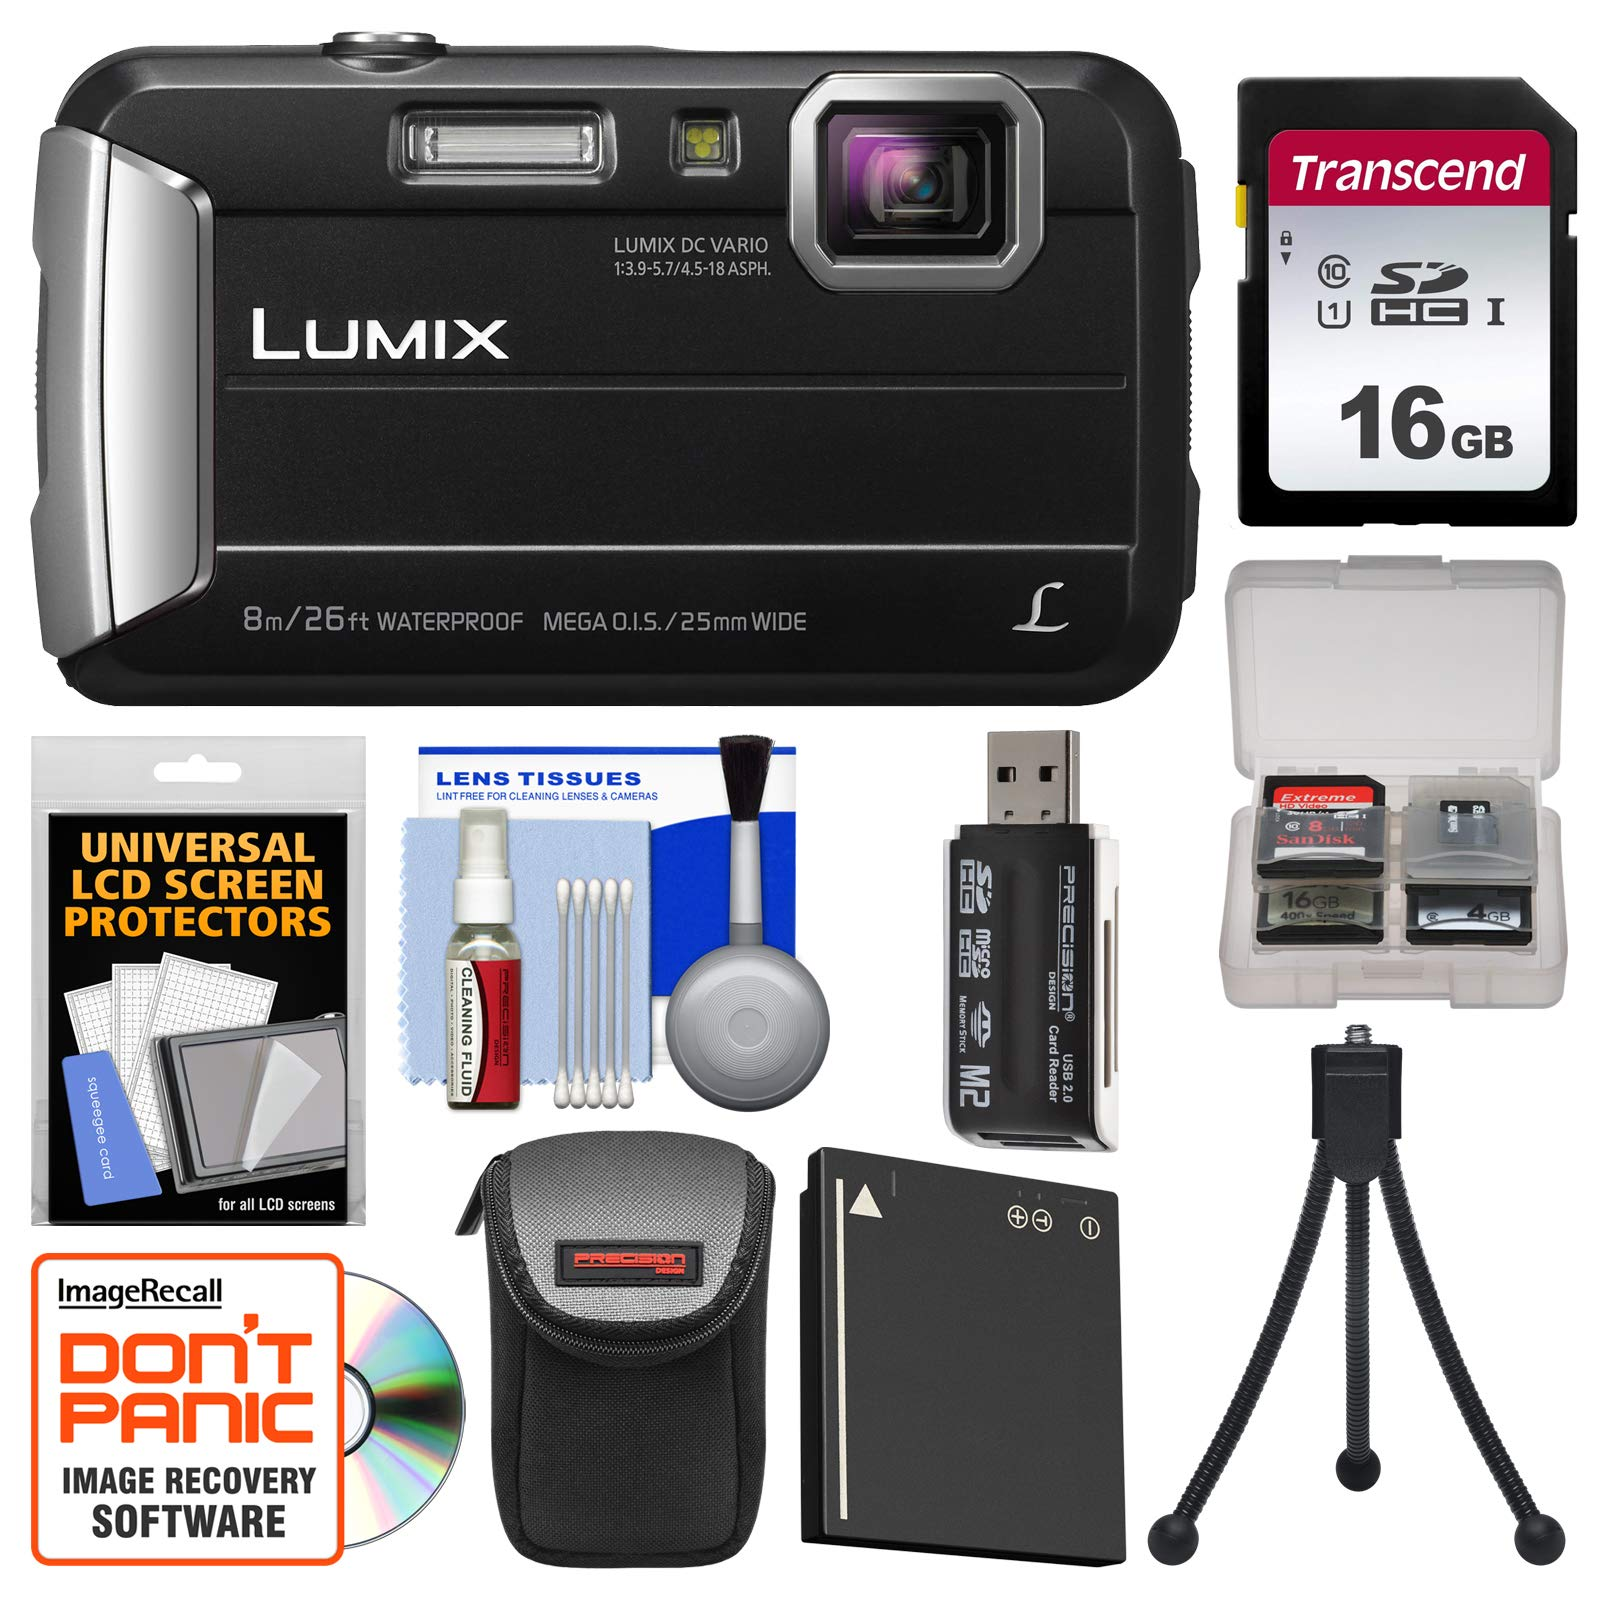 Panasonic Lumix DMC-TS30 Tough Shock & Waterproof Digital Camera (Black) with 16GB Card + Case + Battery + Flex Tripod + Kit